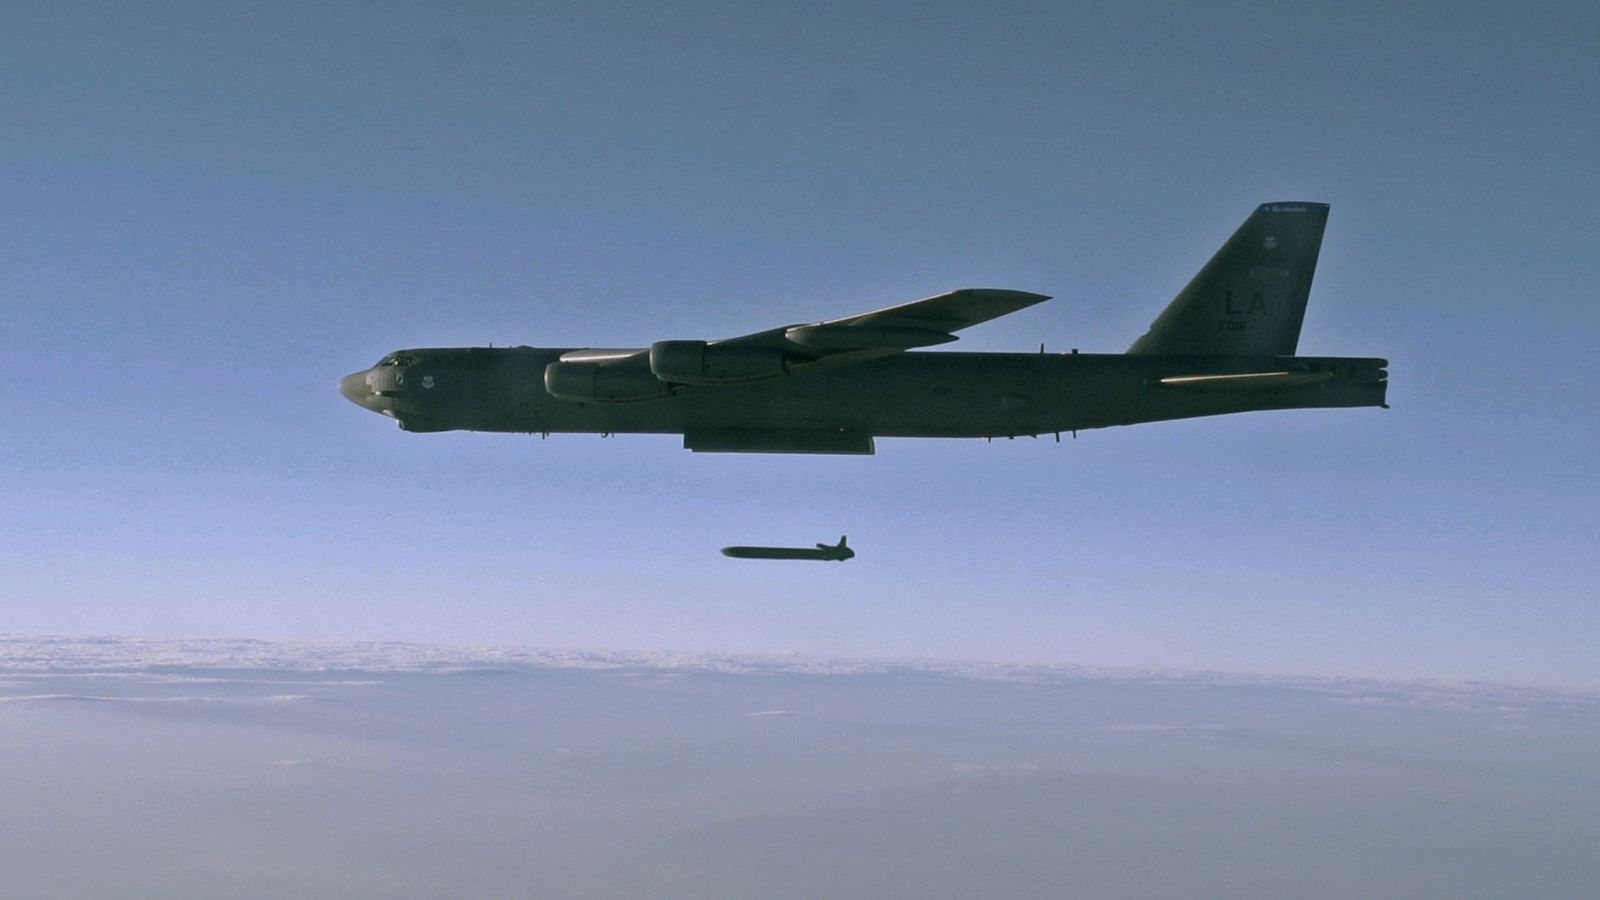 An unarmed AGM-86B Air-Launched Cruise Missile is released from a B-52H Stratofortress over the Utah Test and Training Range